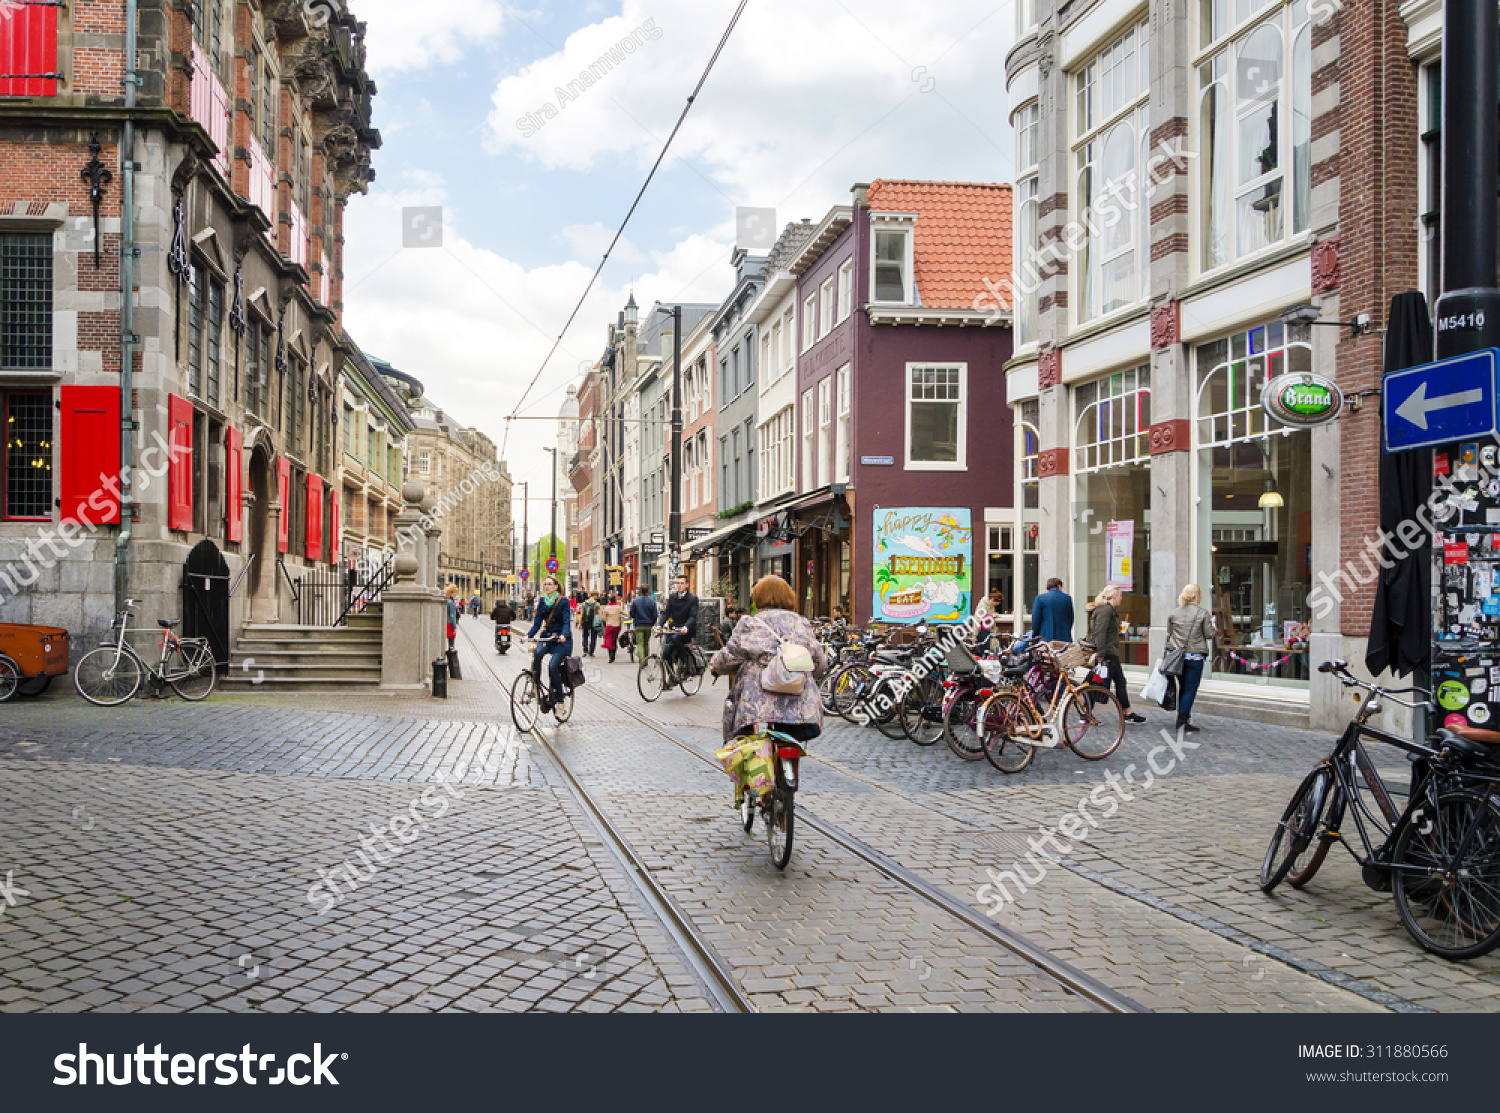 The Hague Netherlands May 8 2015 People shopping on venestraat shopping street in The Hague Netherlands on May 8 2015 The Hague is the capital city of the province of South Netherlands